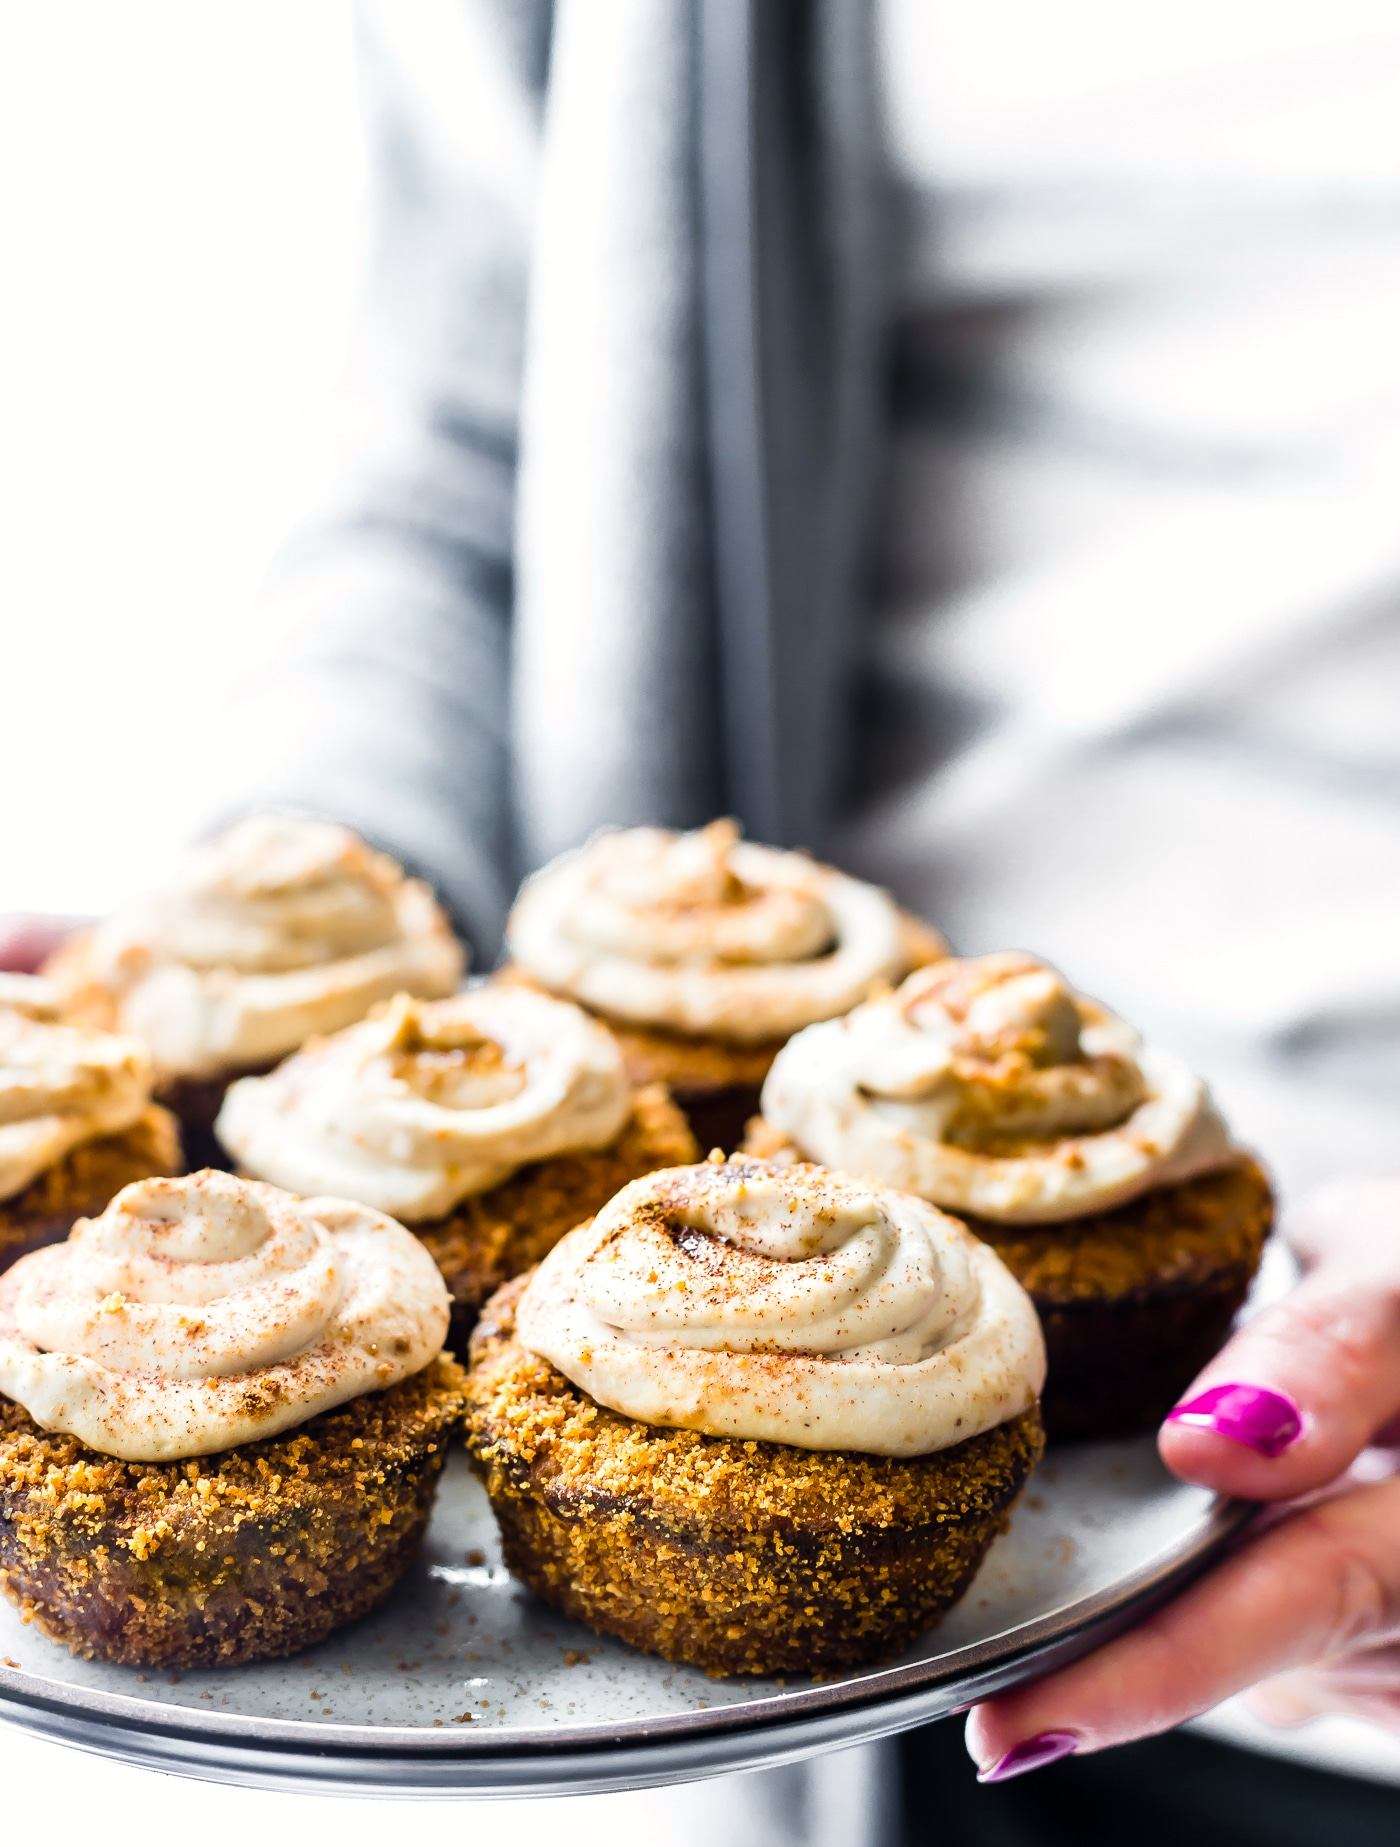 These Flourless Peanut Butter Churro Cupcakes with Coconut Frosting just might make your day! A flourless cupcake that's easy to make, oh so sweet and buttery, and even has a paleo option. Cinnamon Sugar and peanut butter fans will be happy. Our taste buds will be happy. Baking delicious gluten free cupcakes in less than 30 minutes will make everyone happy!